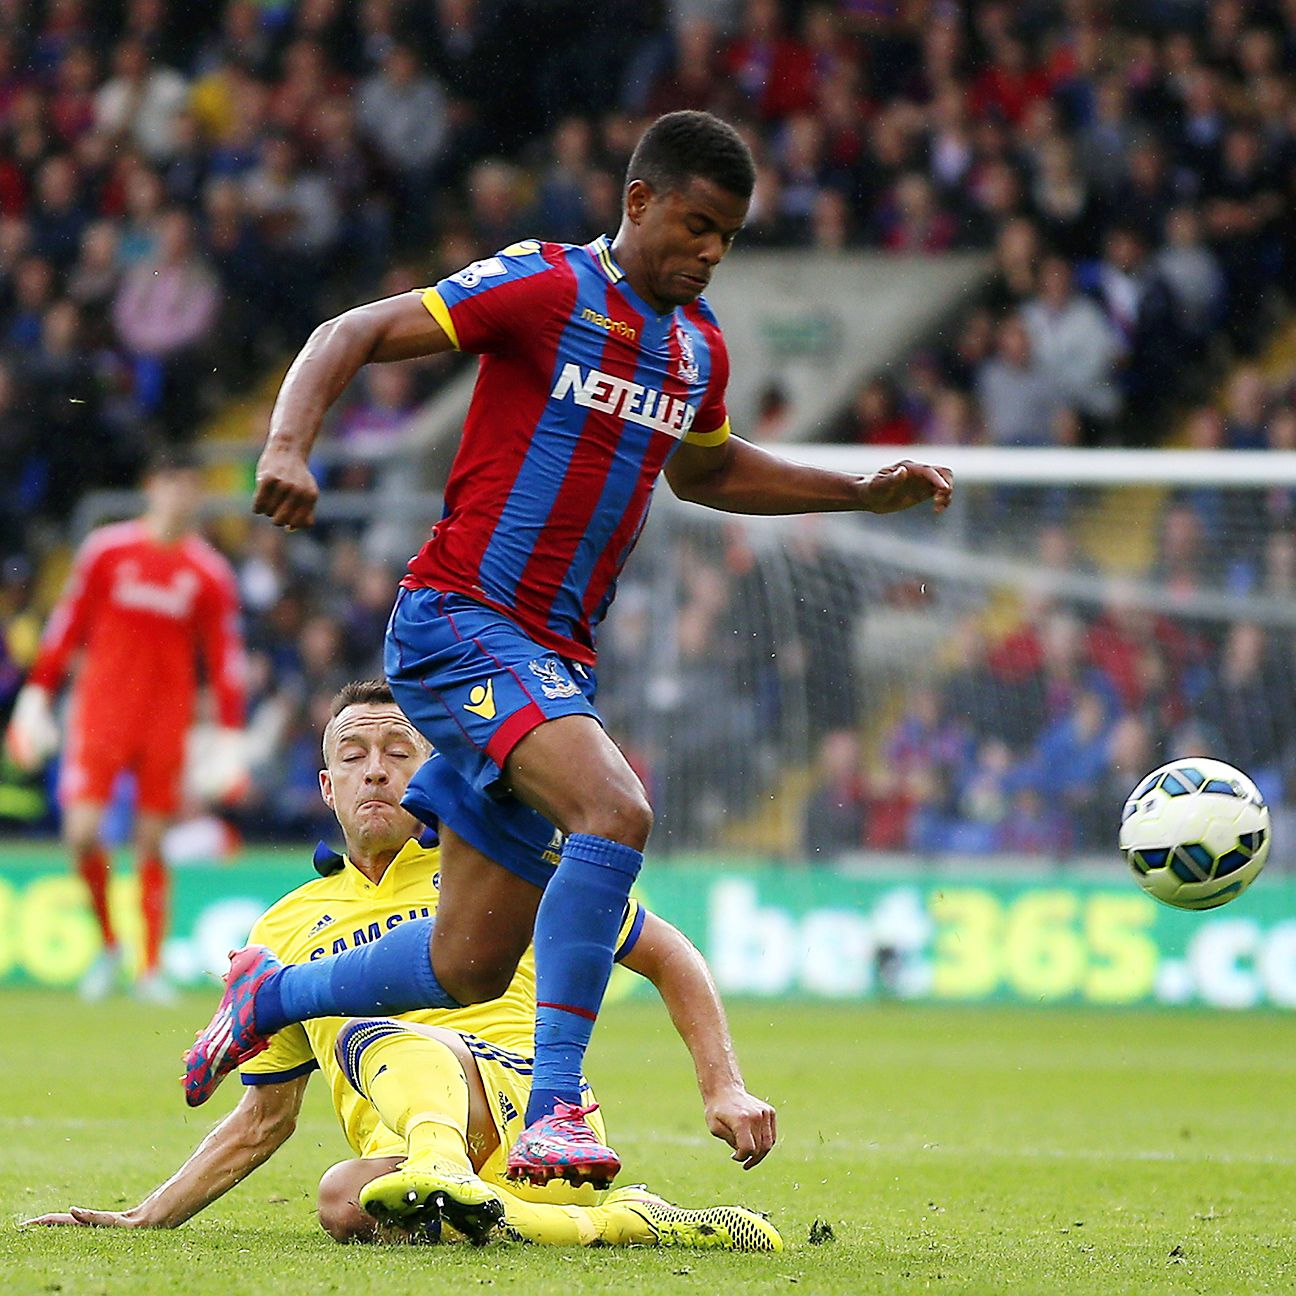 Fraizer Campbell may draw the ire of some fans, but he has been a workhorse up top as the lone striker for Crystal Palace this season.